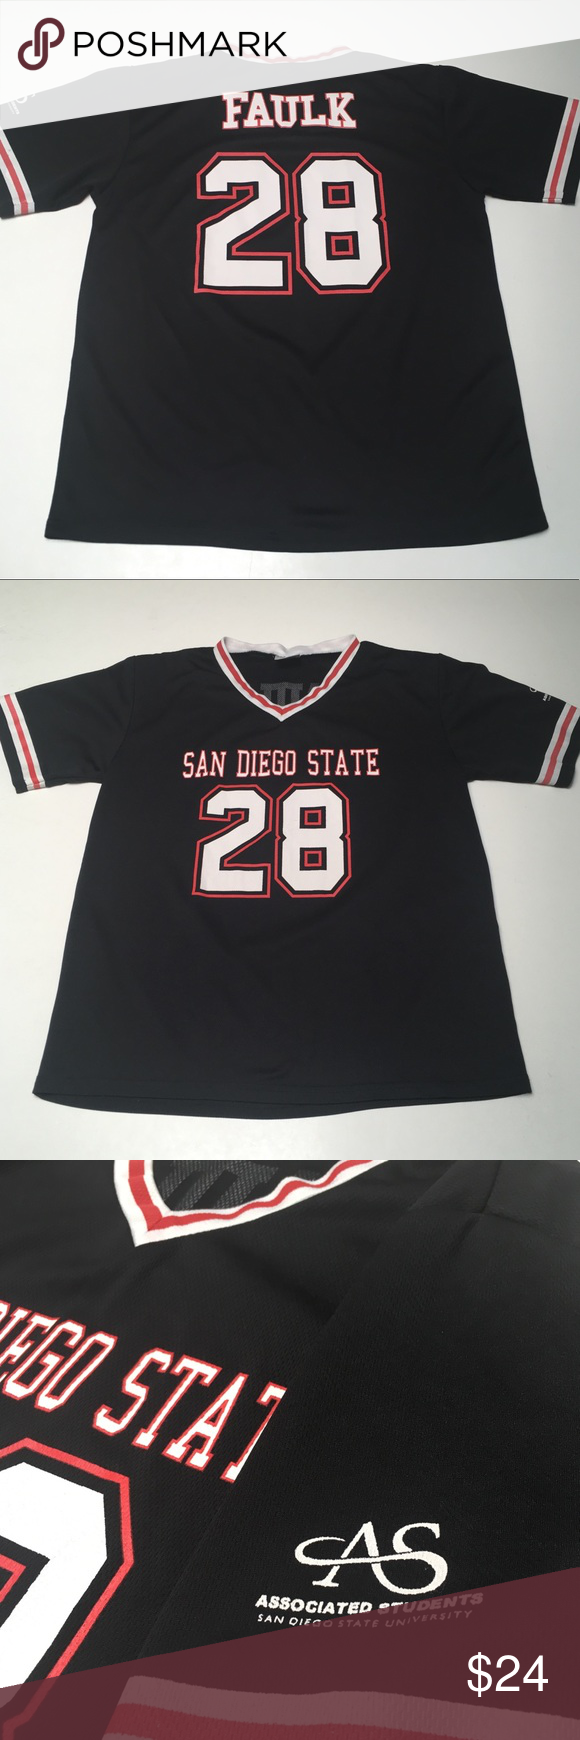 best loved 0fe81 effcf Marshall Faulk San Diego State Aztecs Jersey Represent ...